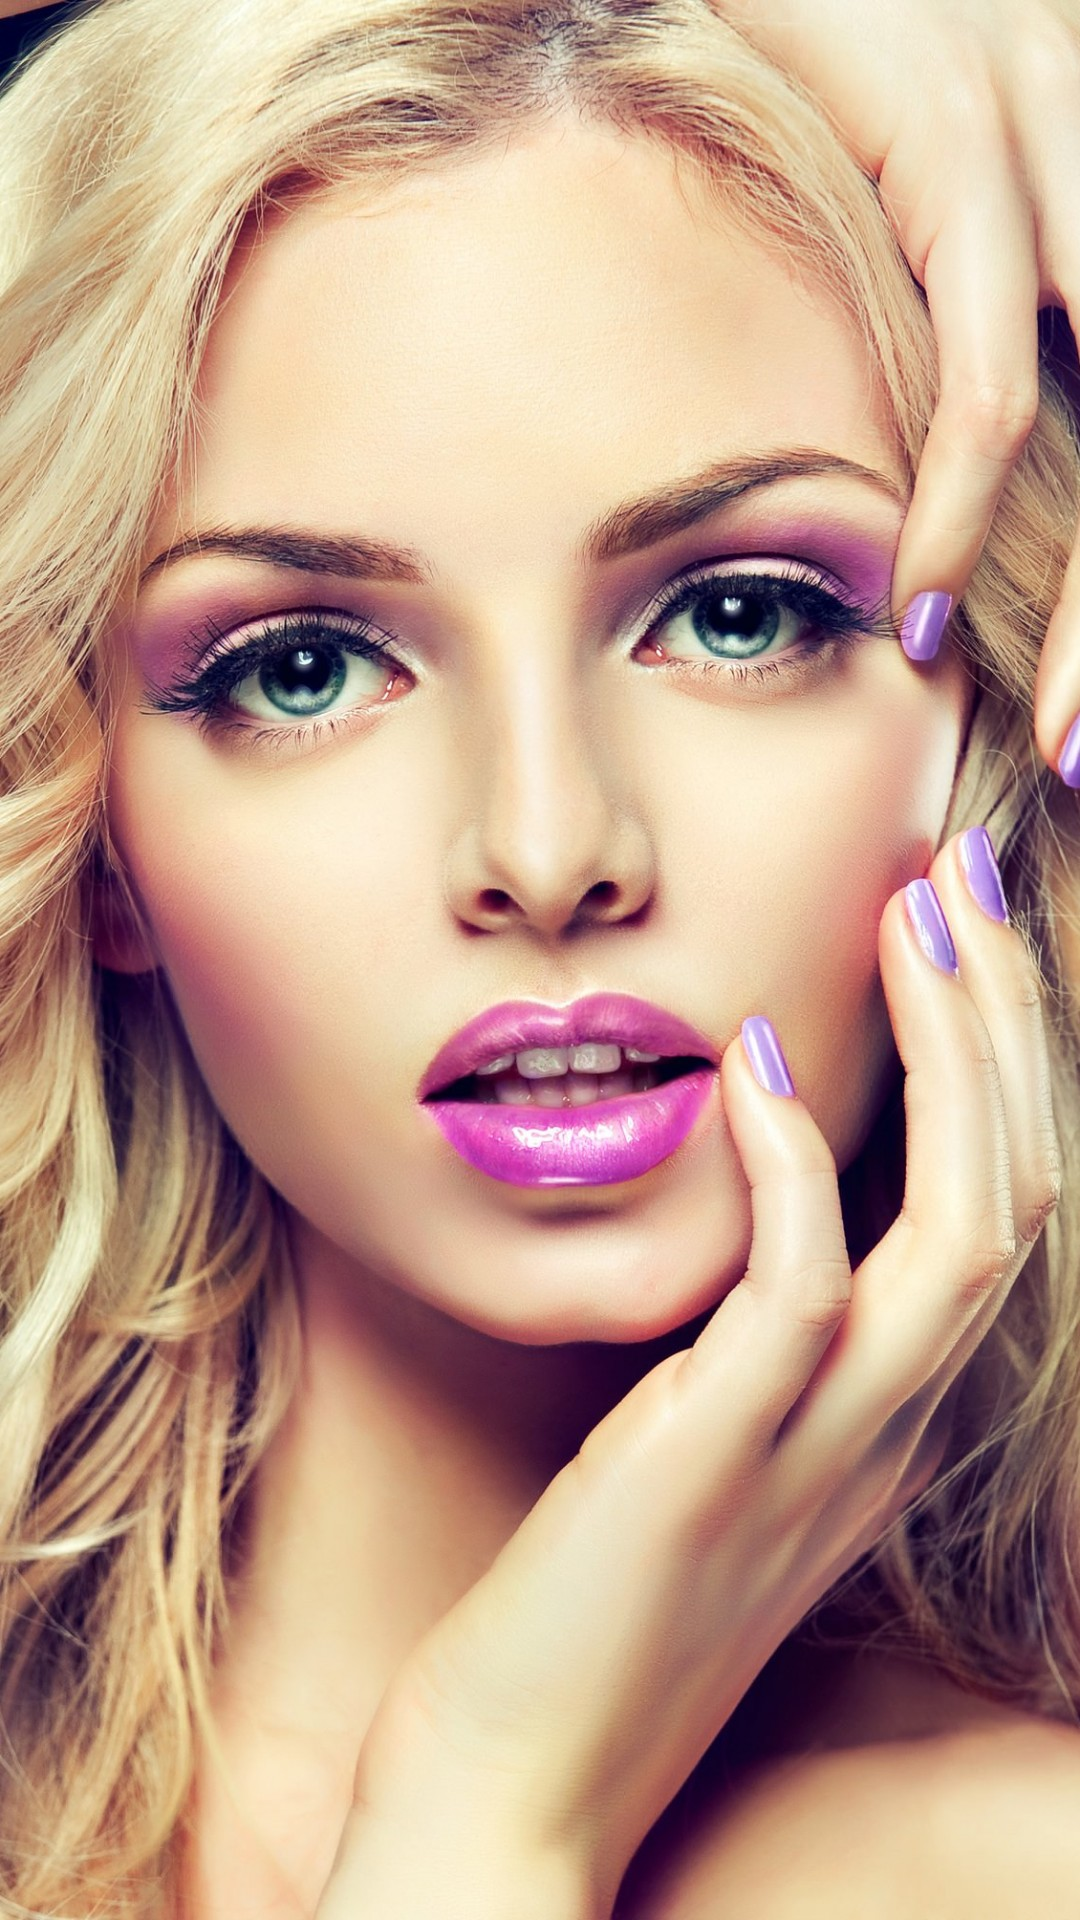 Beautiful Blonde Girl With Lilac Makeup Wallpaper for SONY Xperia Z1